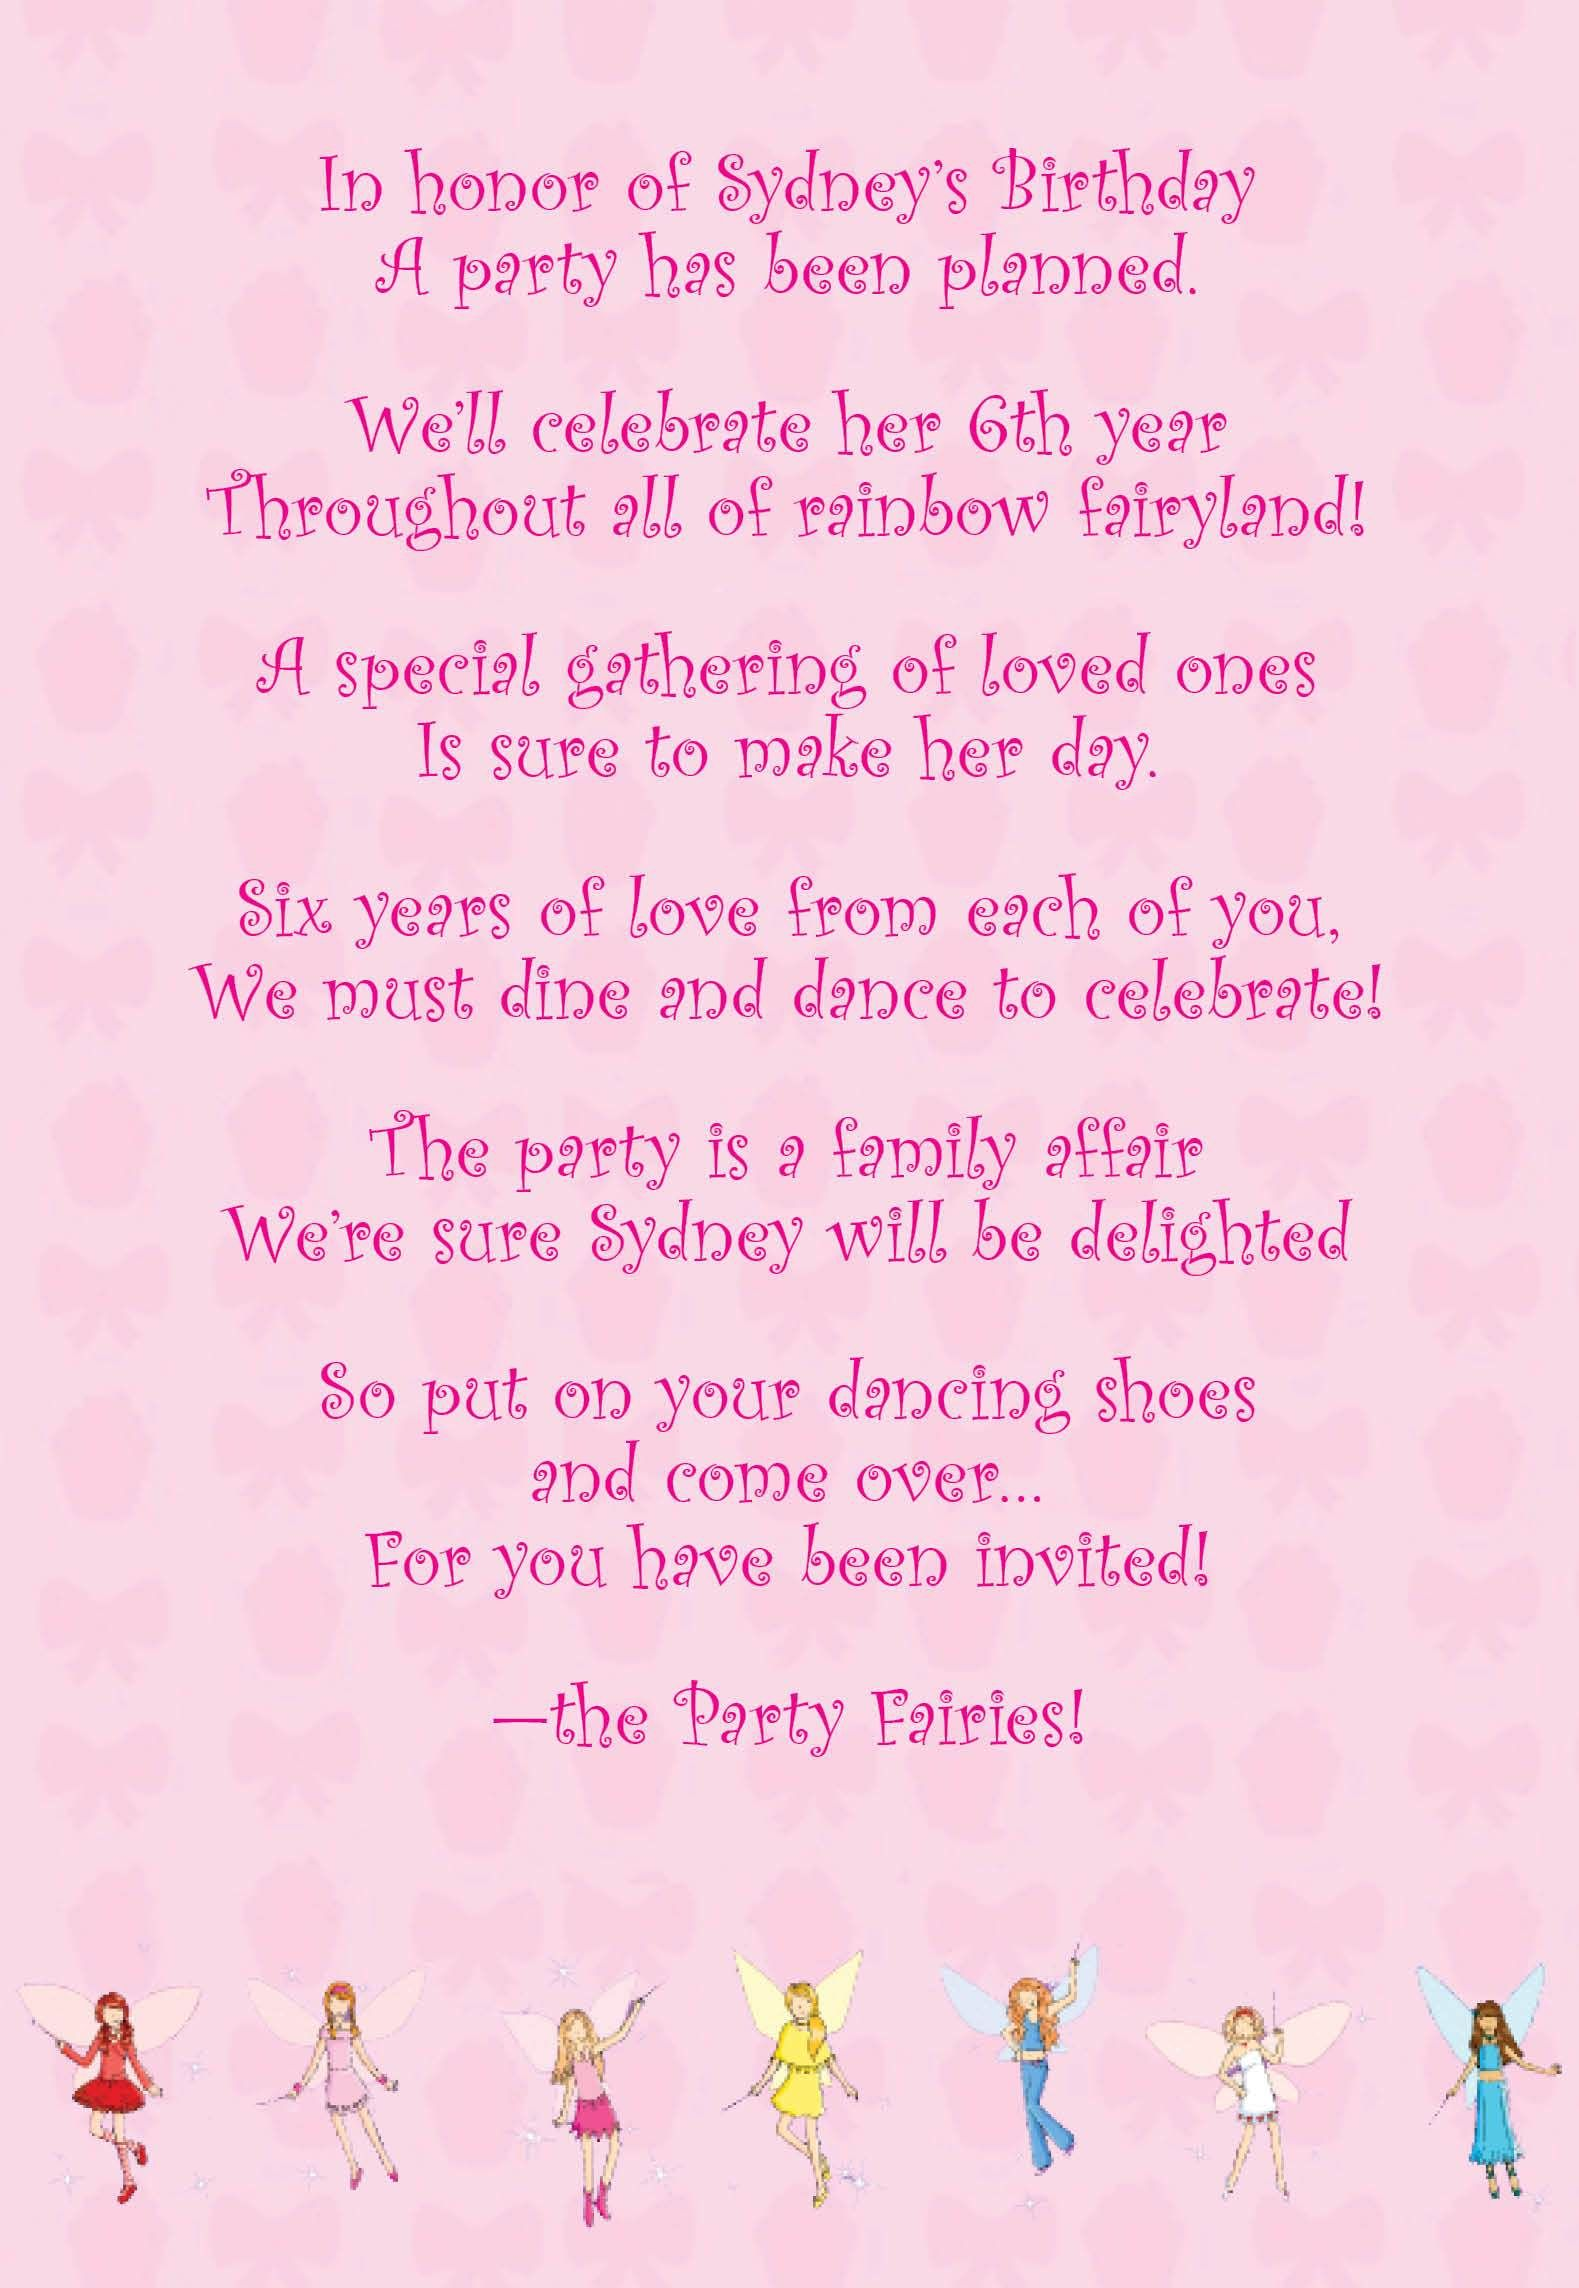 I used the format of the prelude poem for the invitation language ...